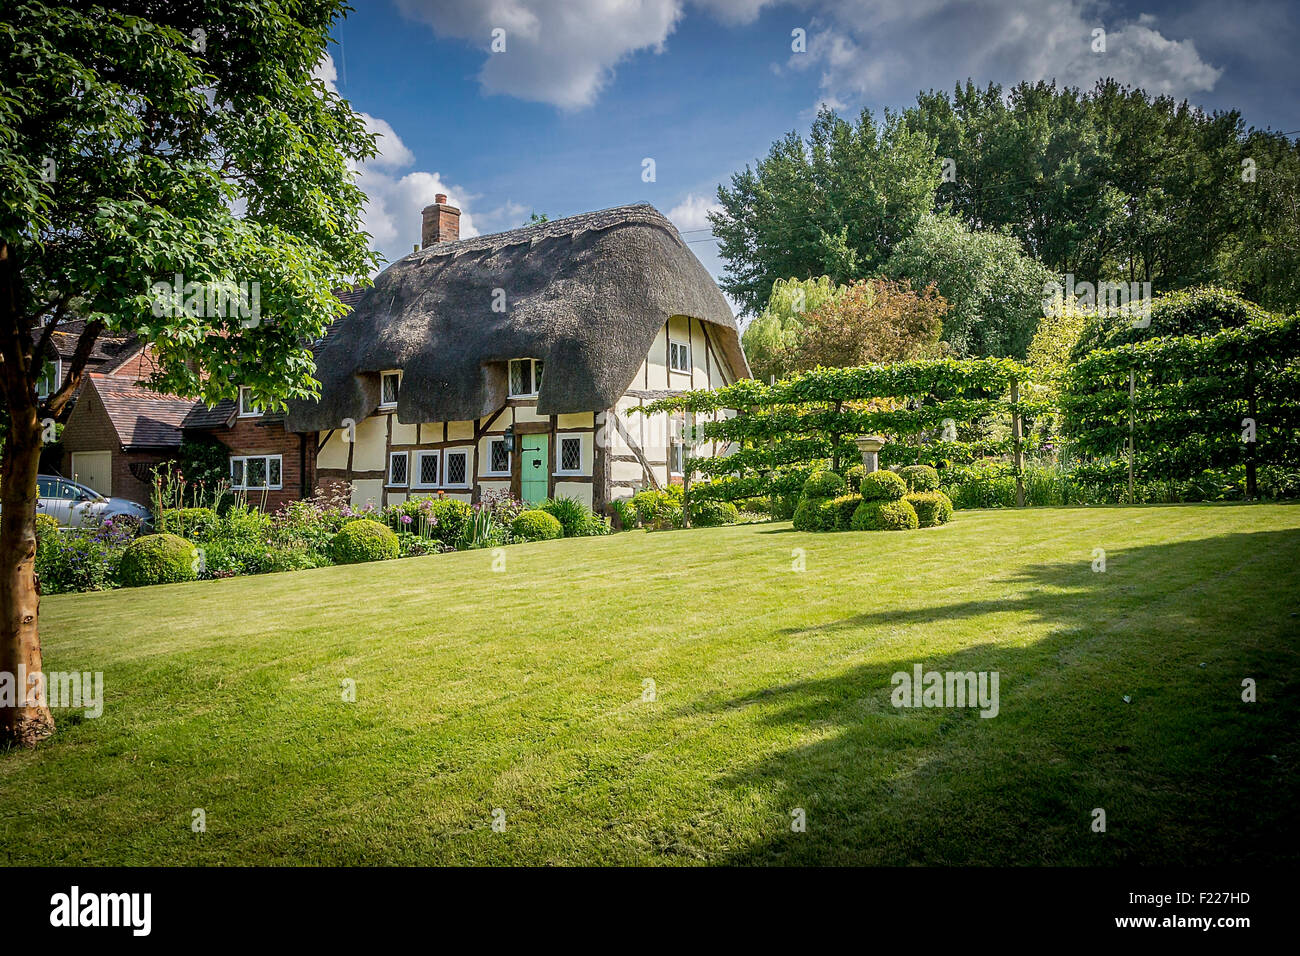 Picturesque English thatched cottage and garden - Stock Image